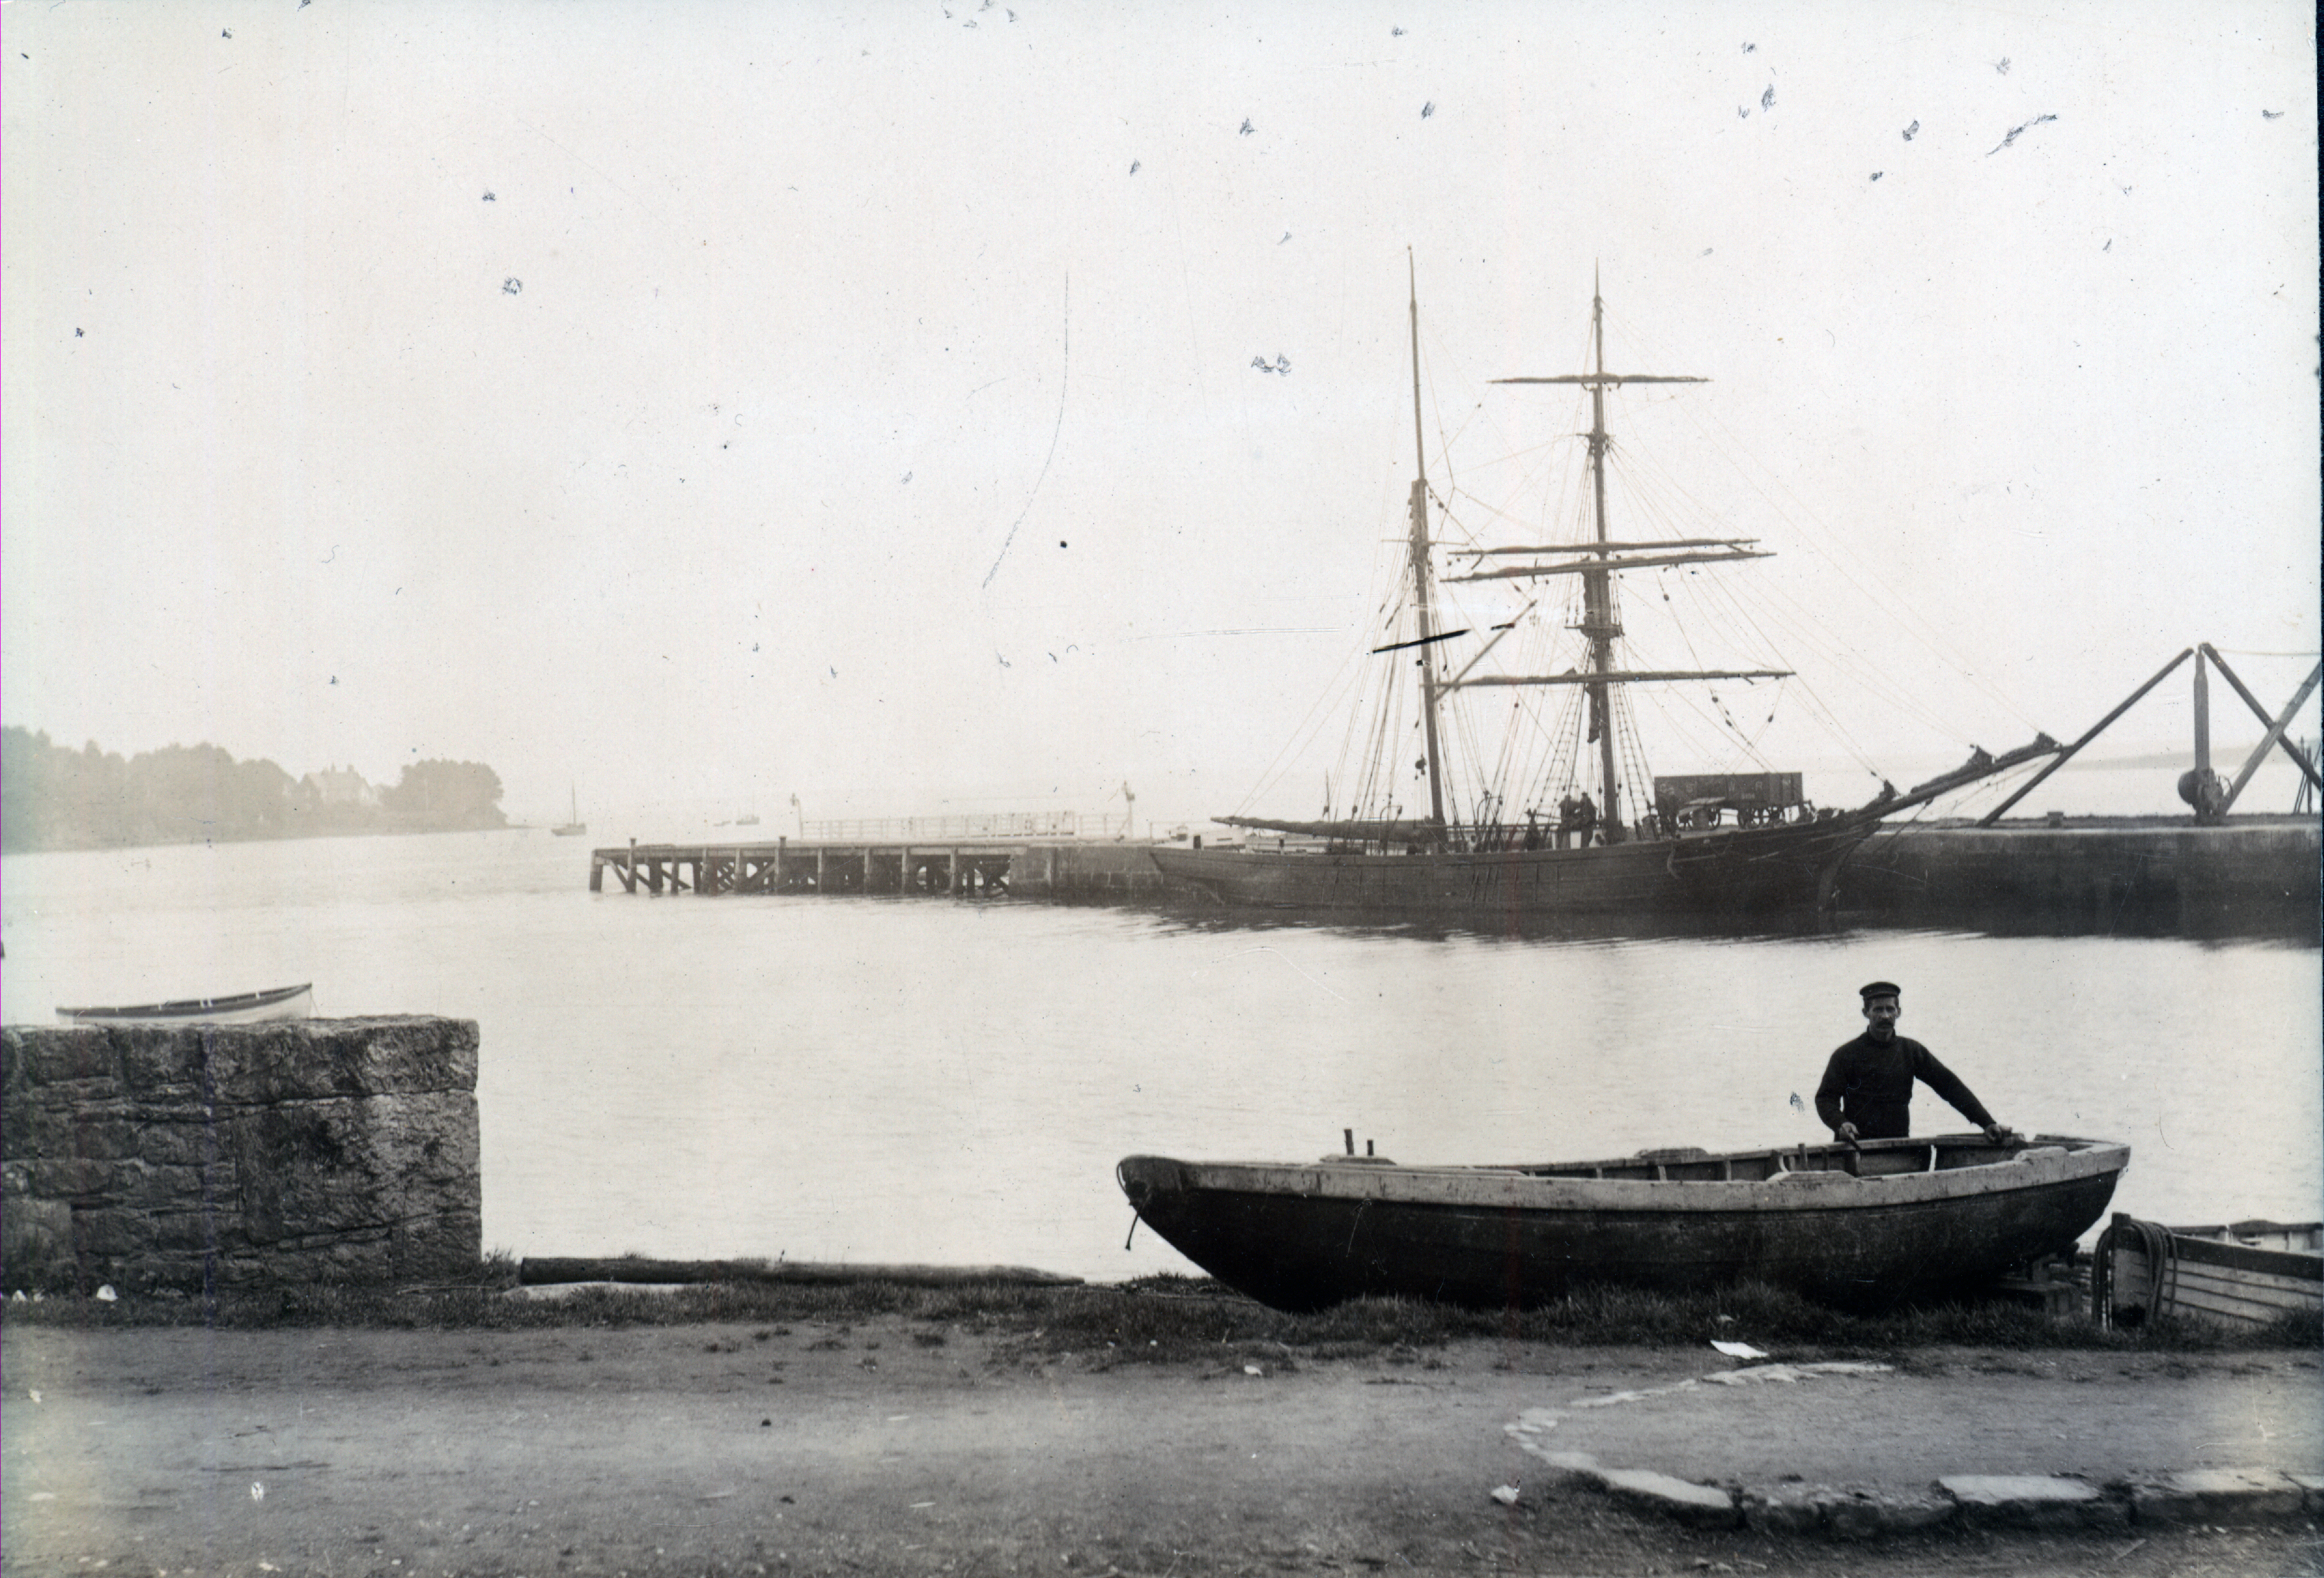 The Abbey men fished up river from Limerick City, and the Strand men fished down river (until 2006), according to historian Sharon Slater. Photo courtesy of the Limerick Archives